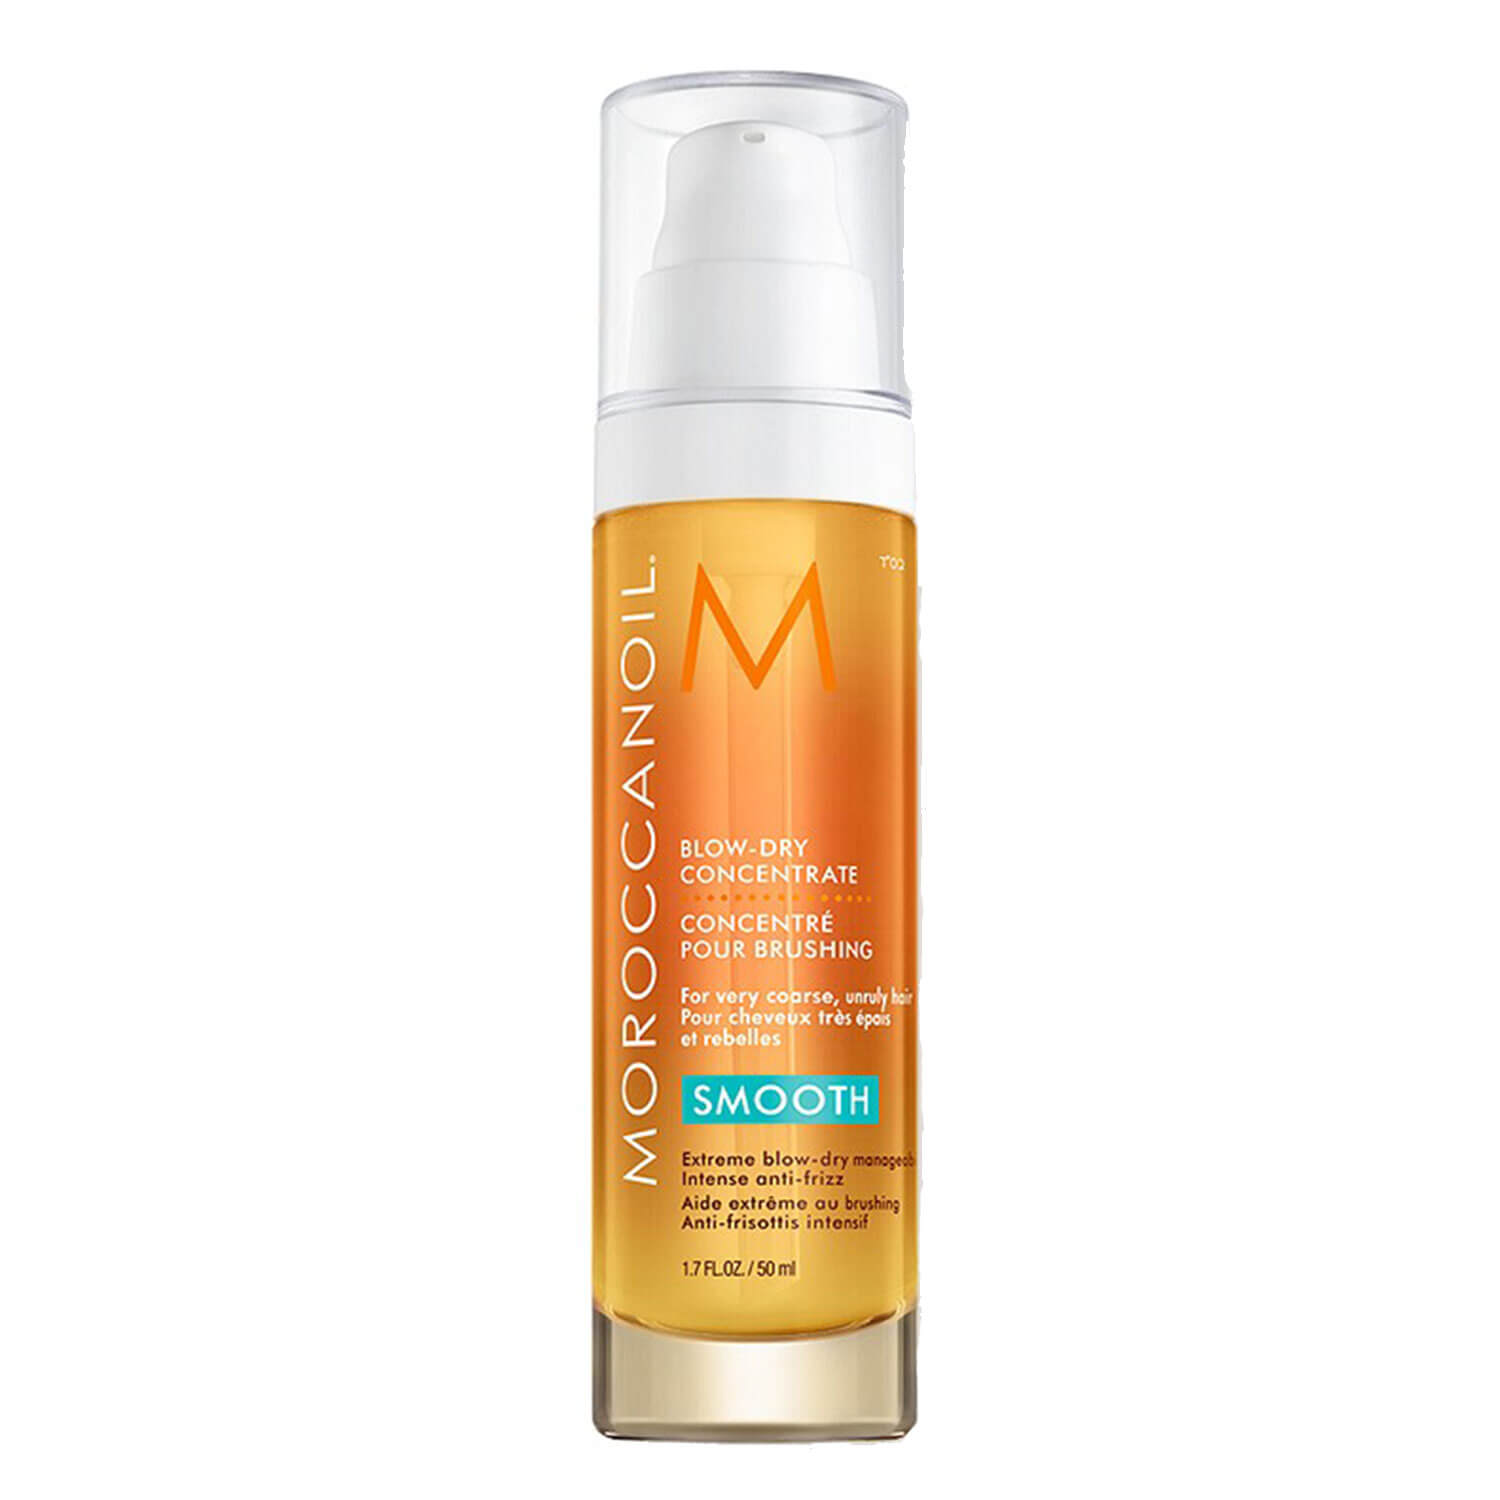 Moroccanoil - Blow-dry Concentrate